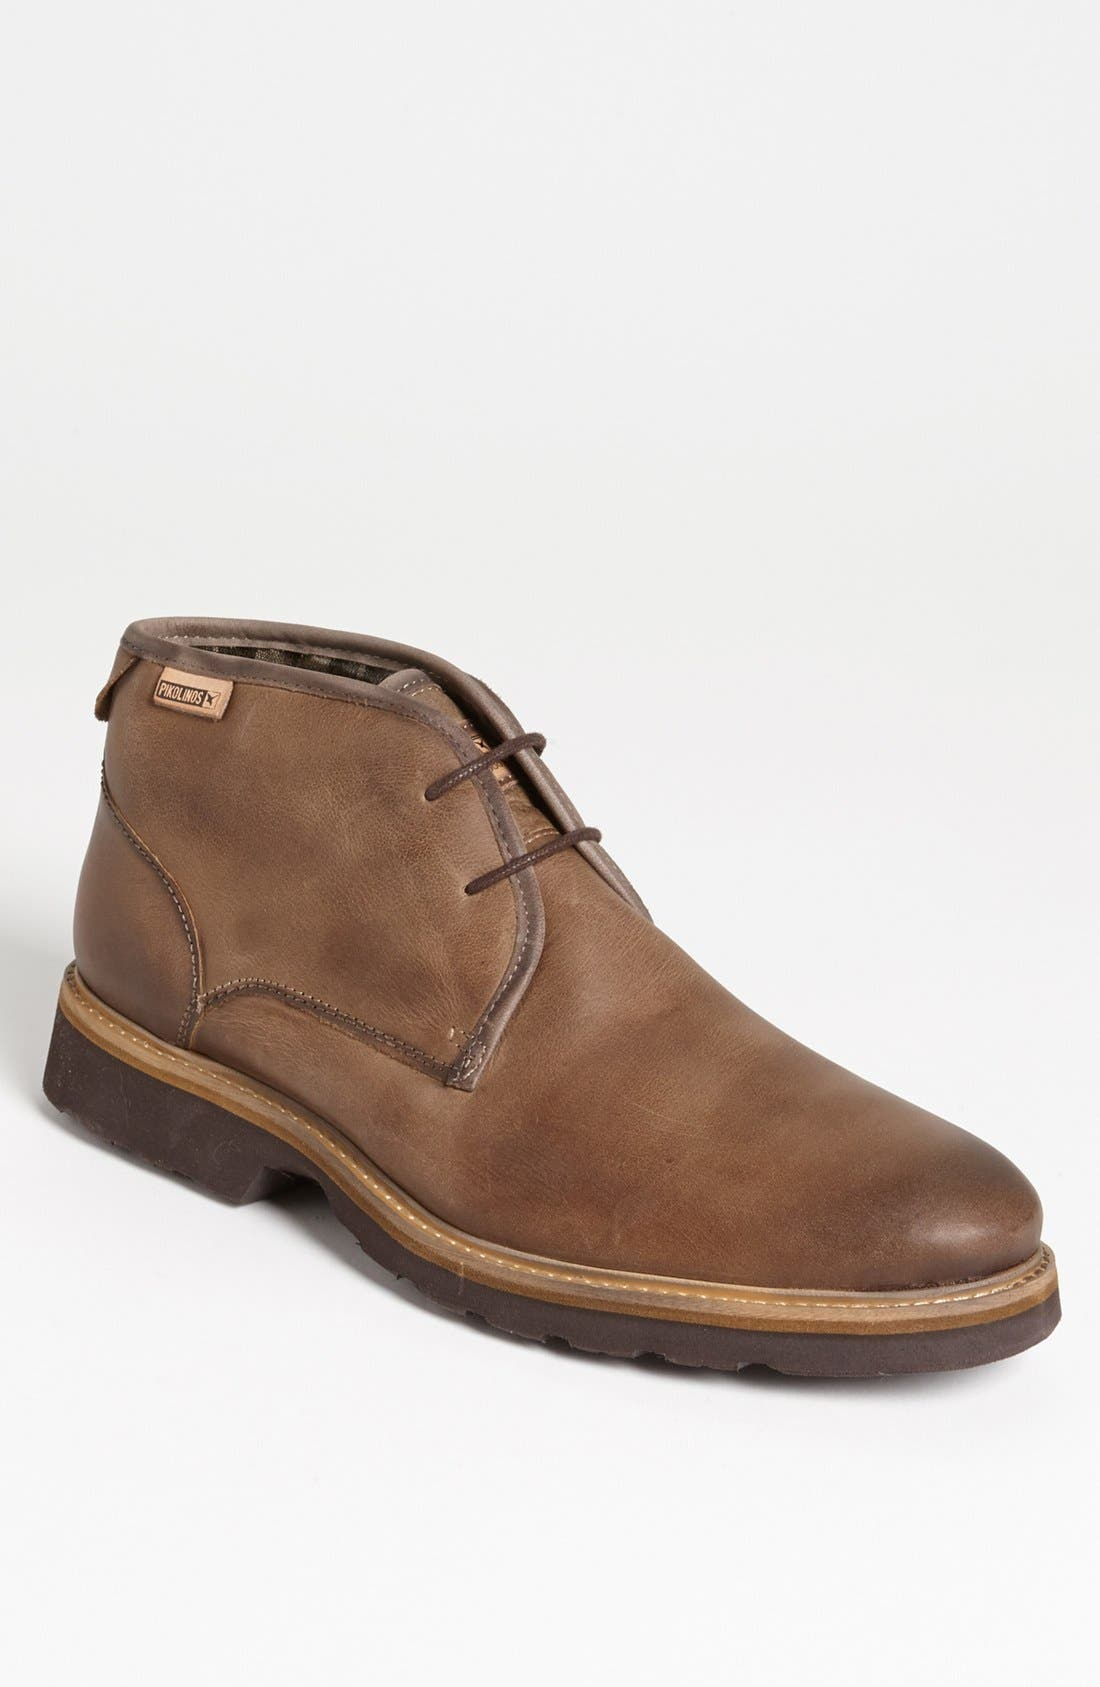 Alternate Image 1 Selected - PIKOLINOS 'Glasgow' Chukka Boot